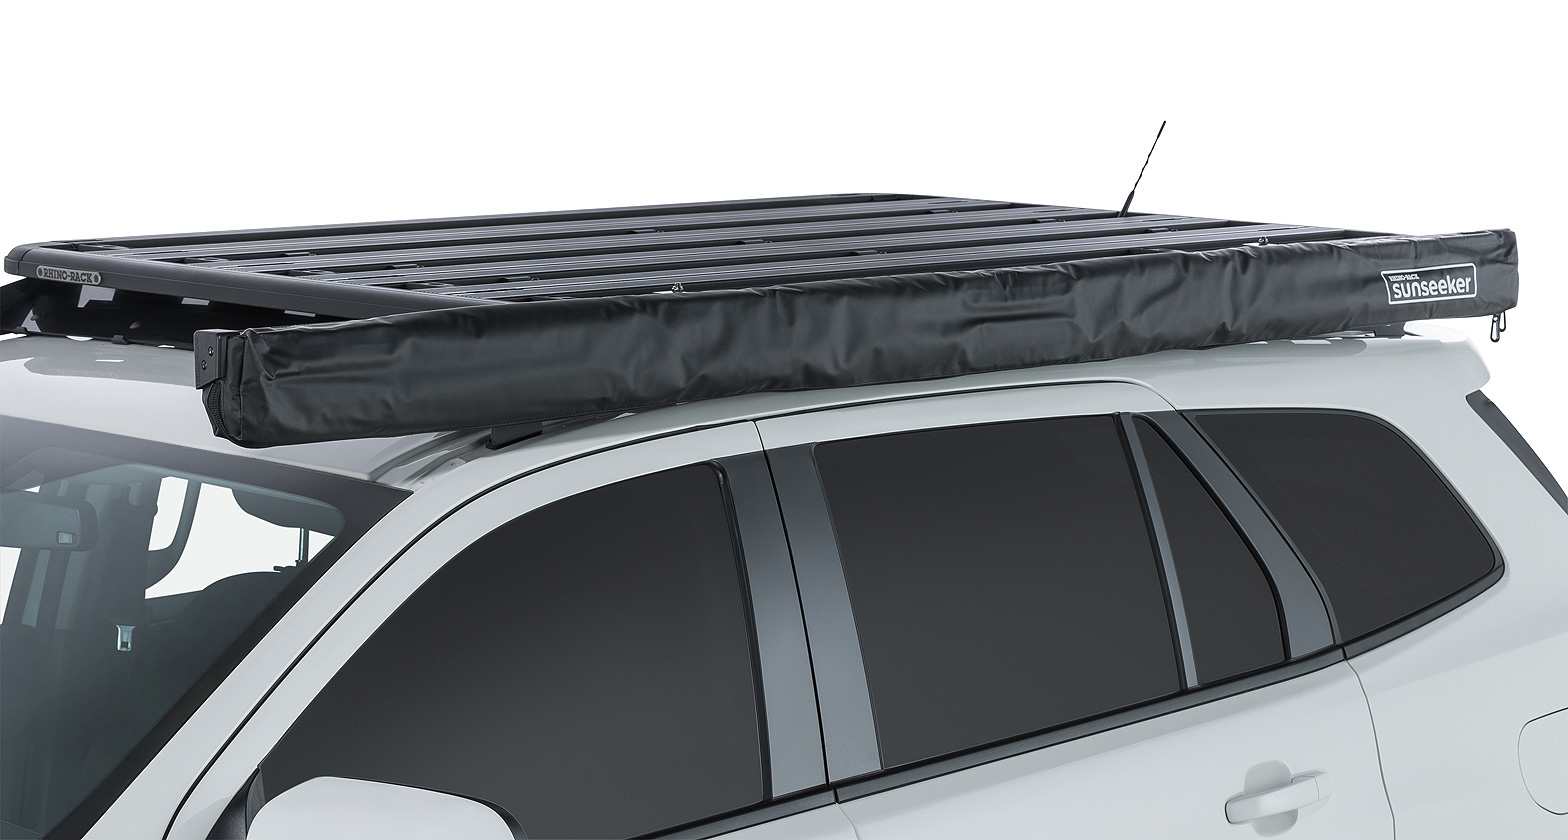 32133 Sunseeker 25m Awning Rhino Rack